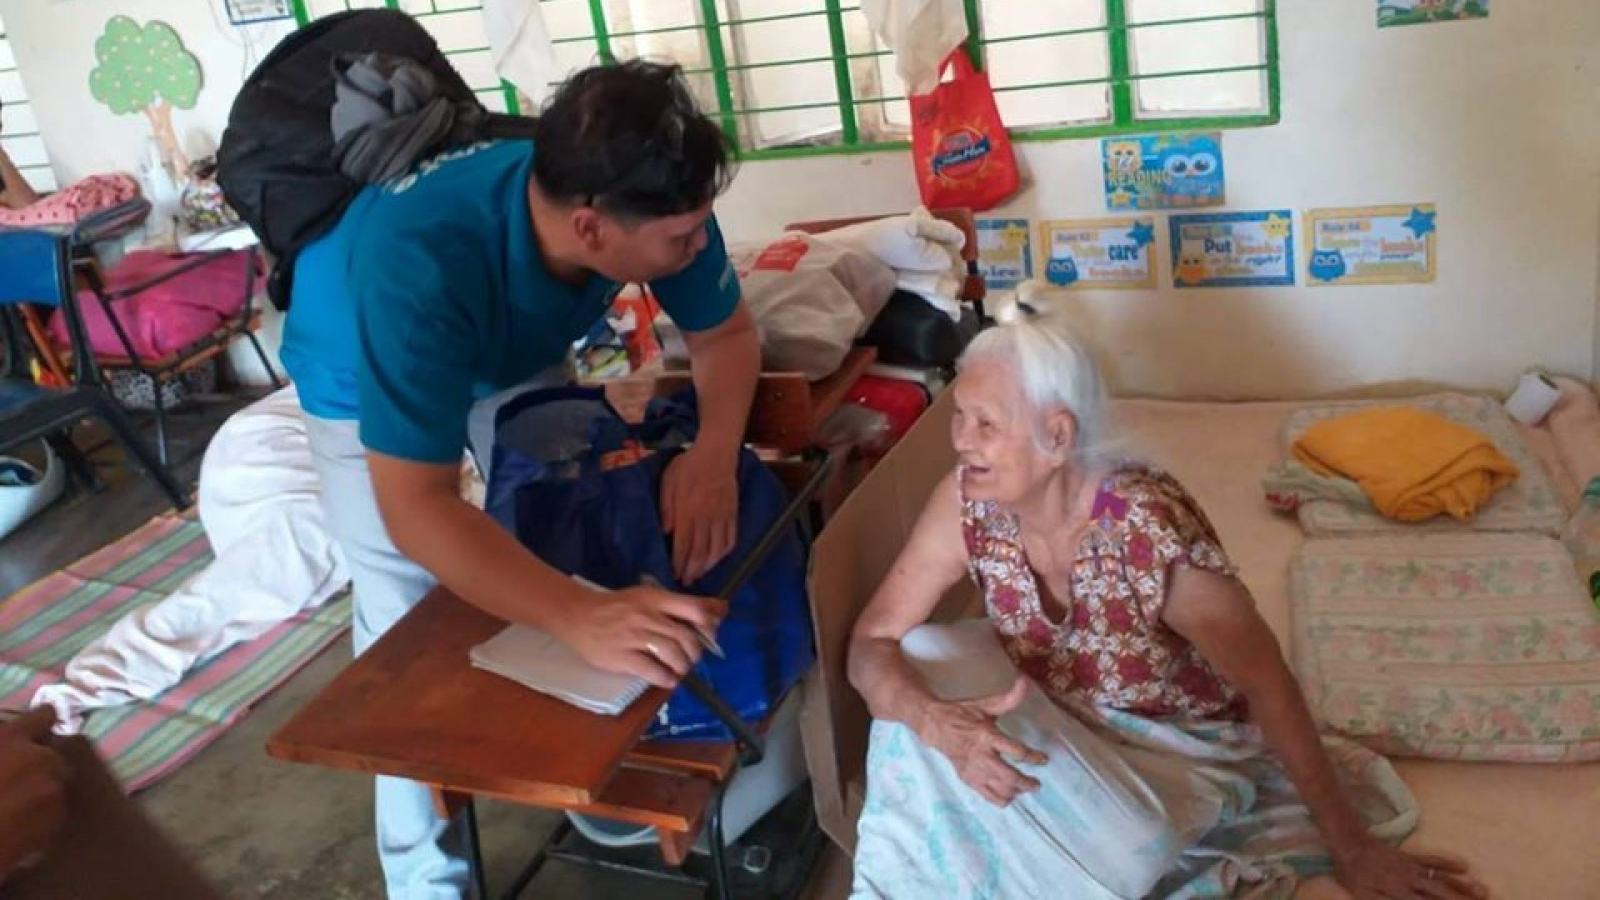 A-Humanity- -Inclusion-staff-member-assesses-the-needs-of-an-older-woman-in-the-Philippines-following-the-Jan-12-volcano